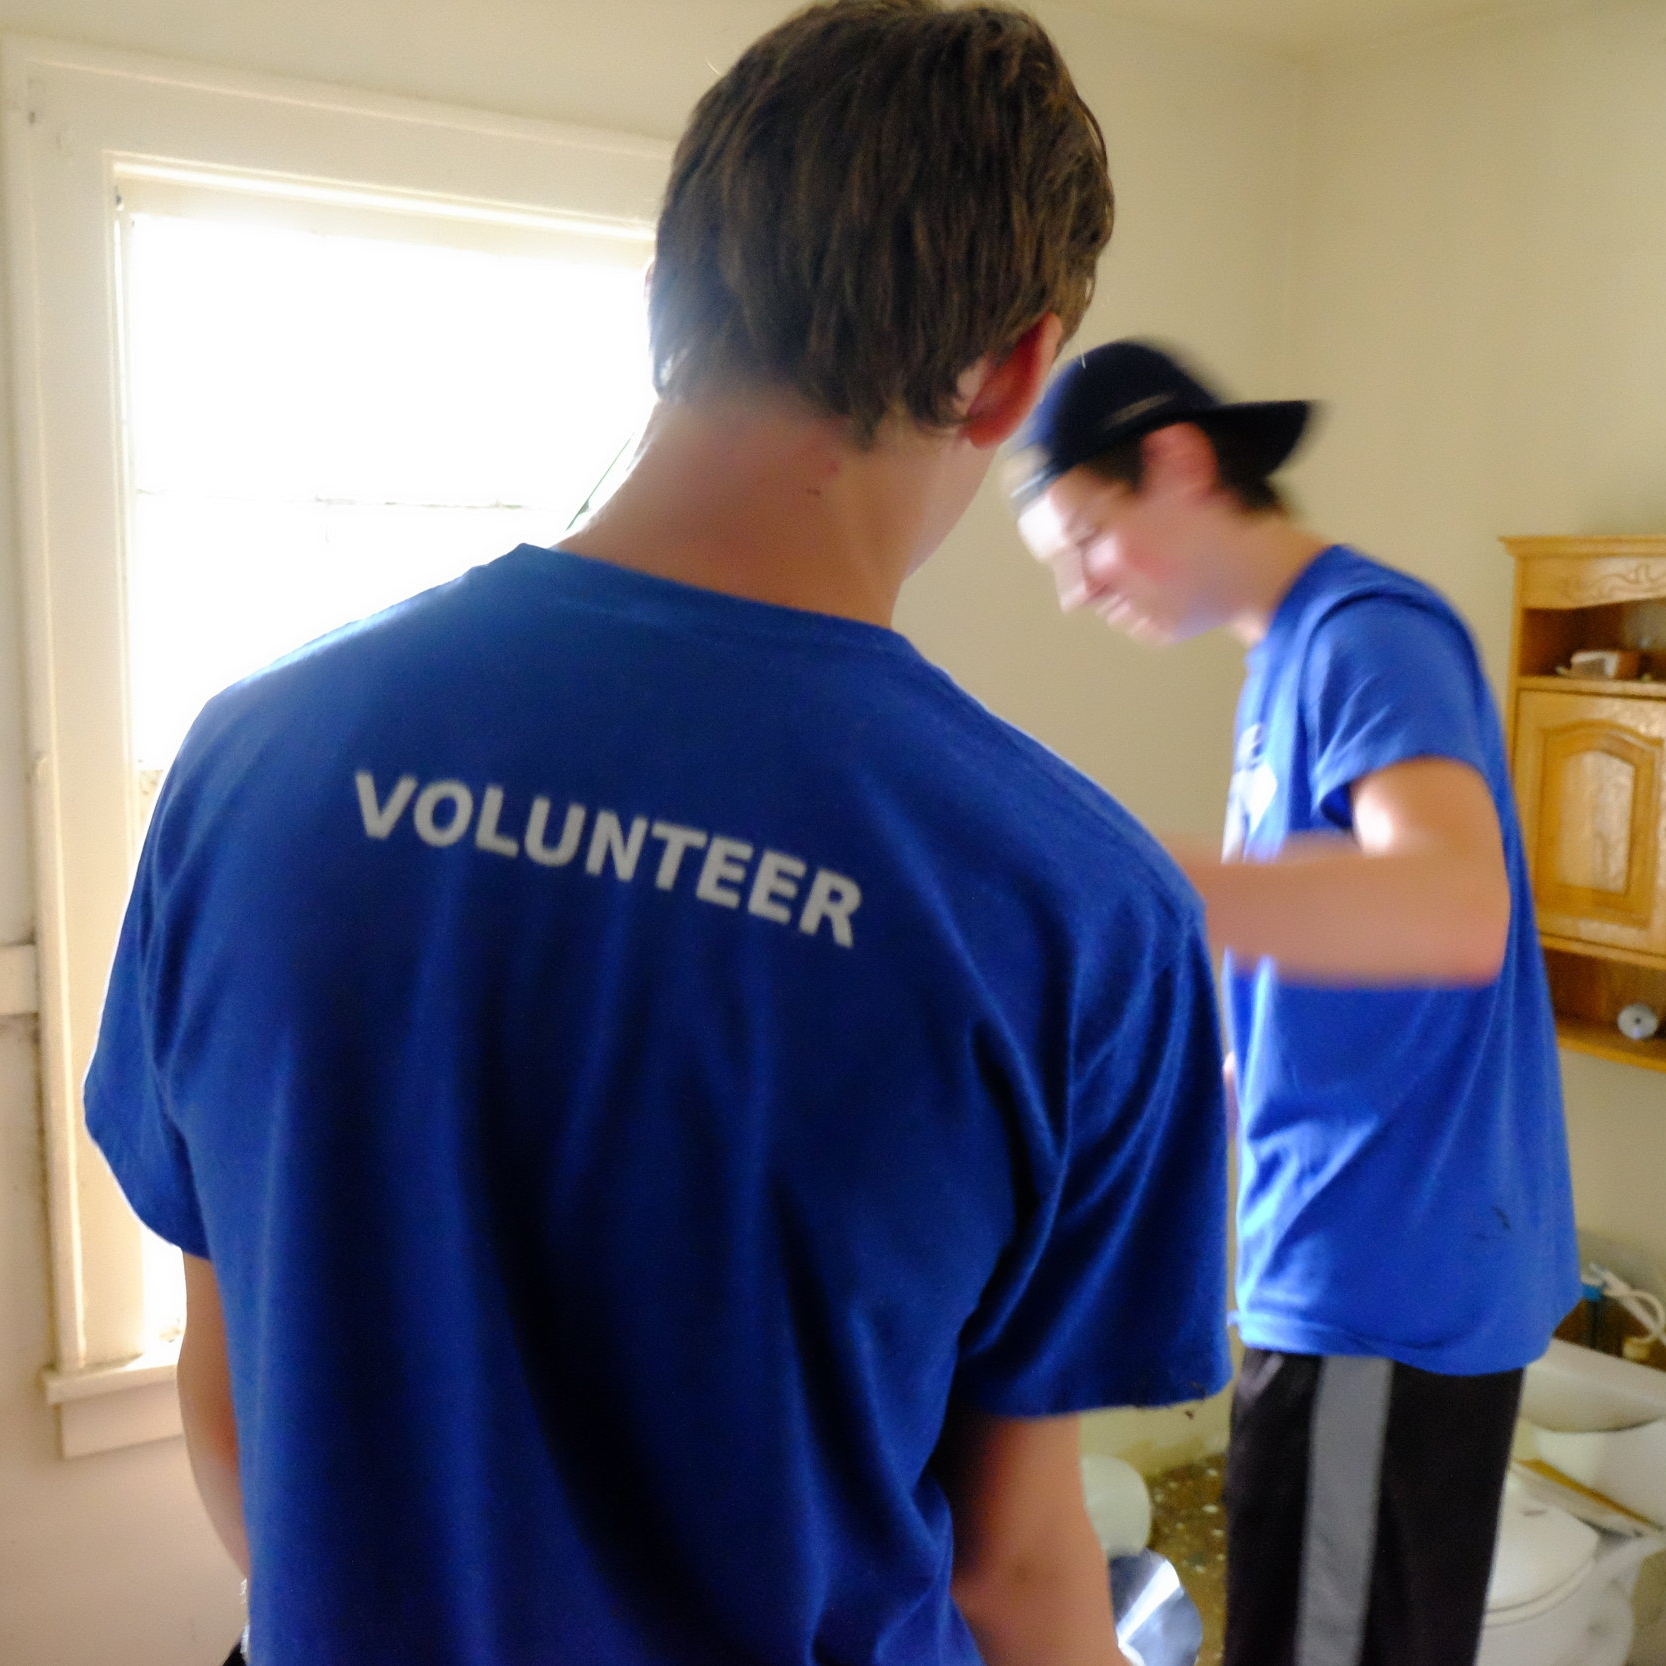 WHY VOLUNTEER? - There are hundreds of benefits to volunteering, here are just a few to get you started!